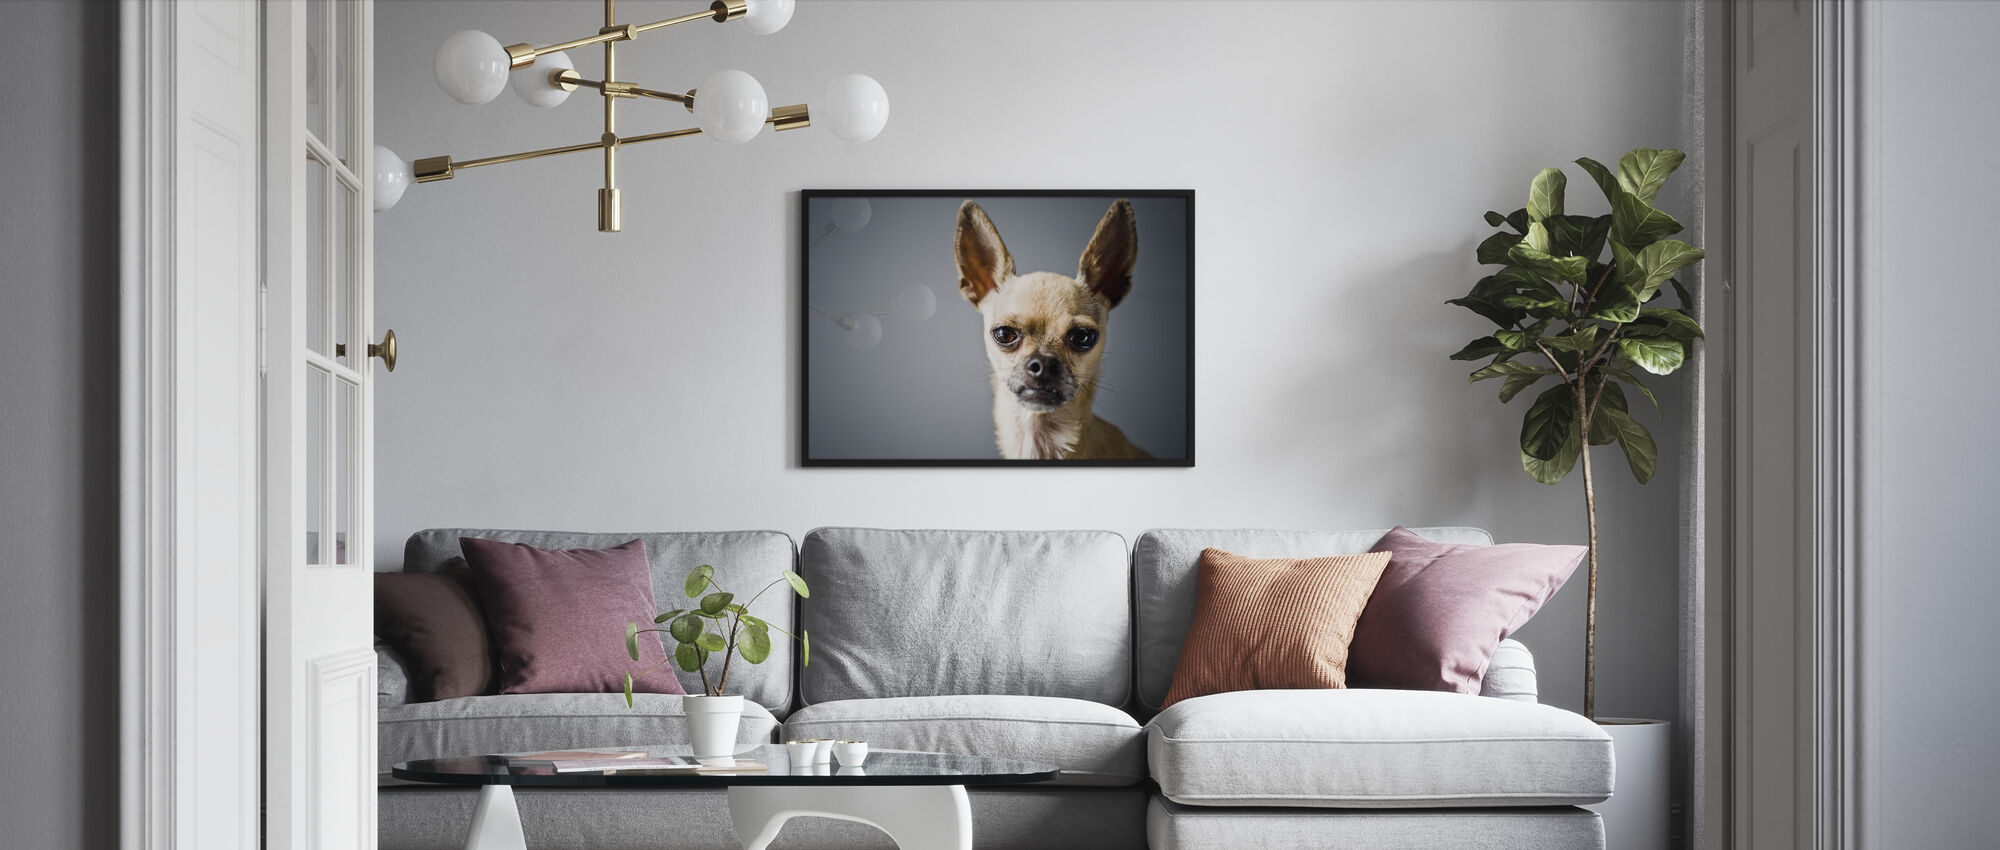 Chihuahua Imitating Lama - Framed print - Living Room